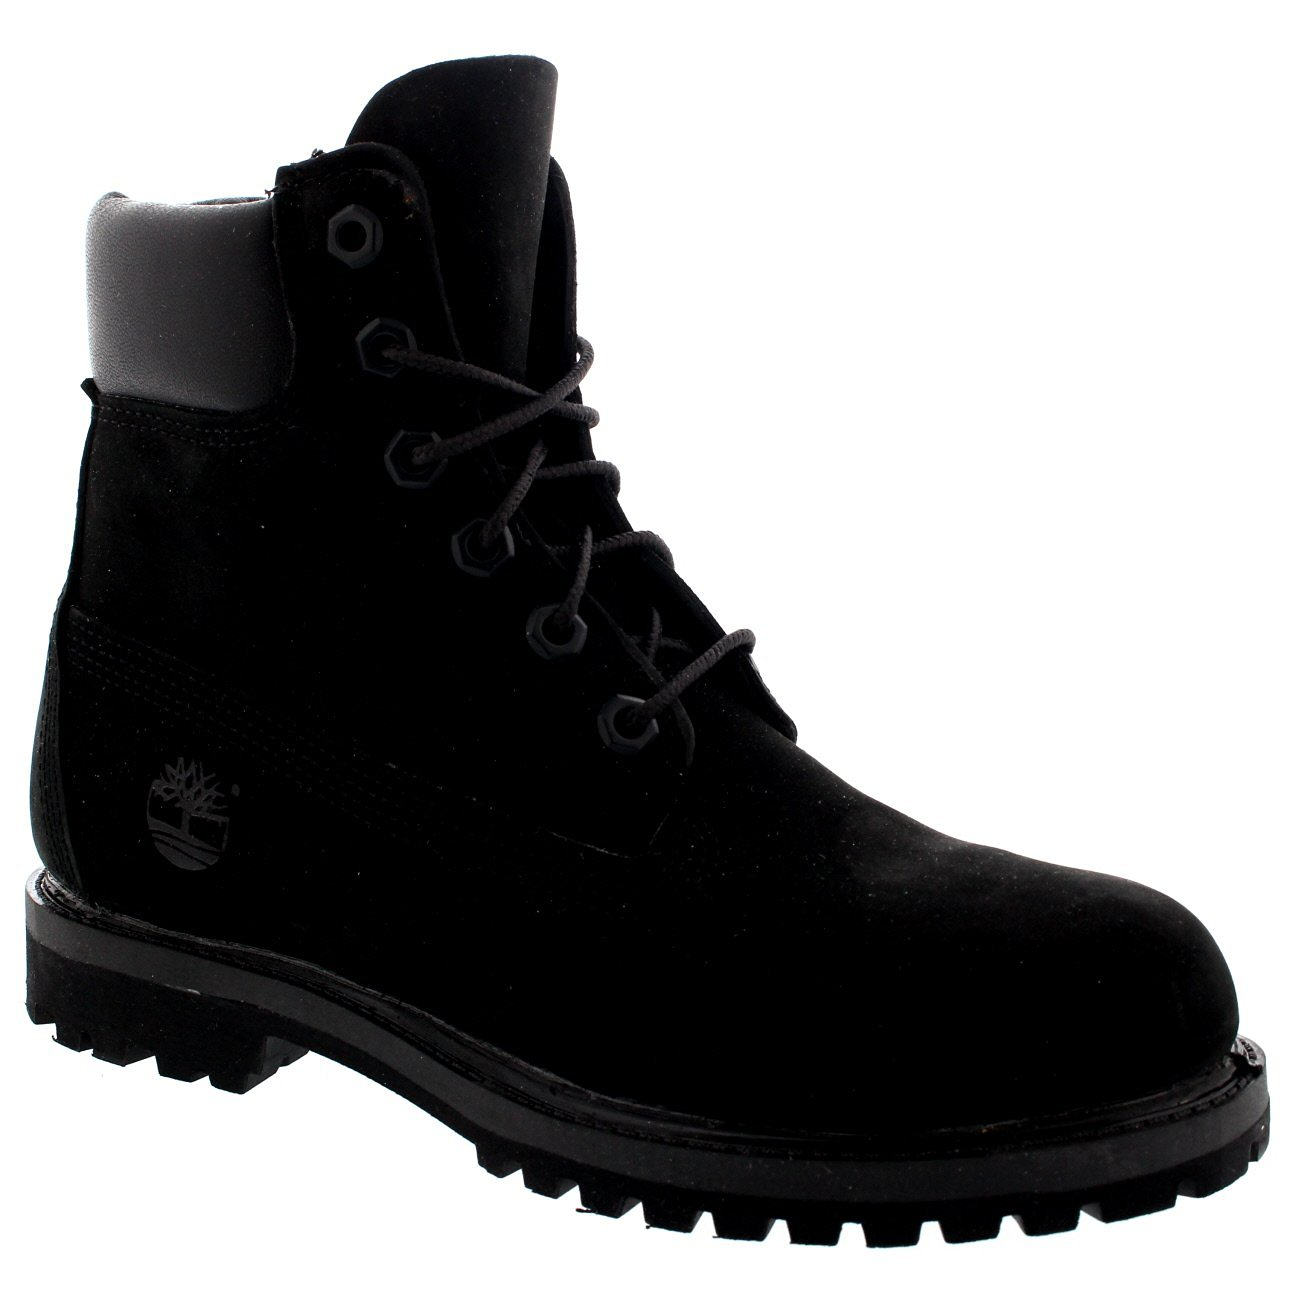 Womens Timberland 6 Inch Premium Suede Black Lace Up Ankle High Boots - Black - 7